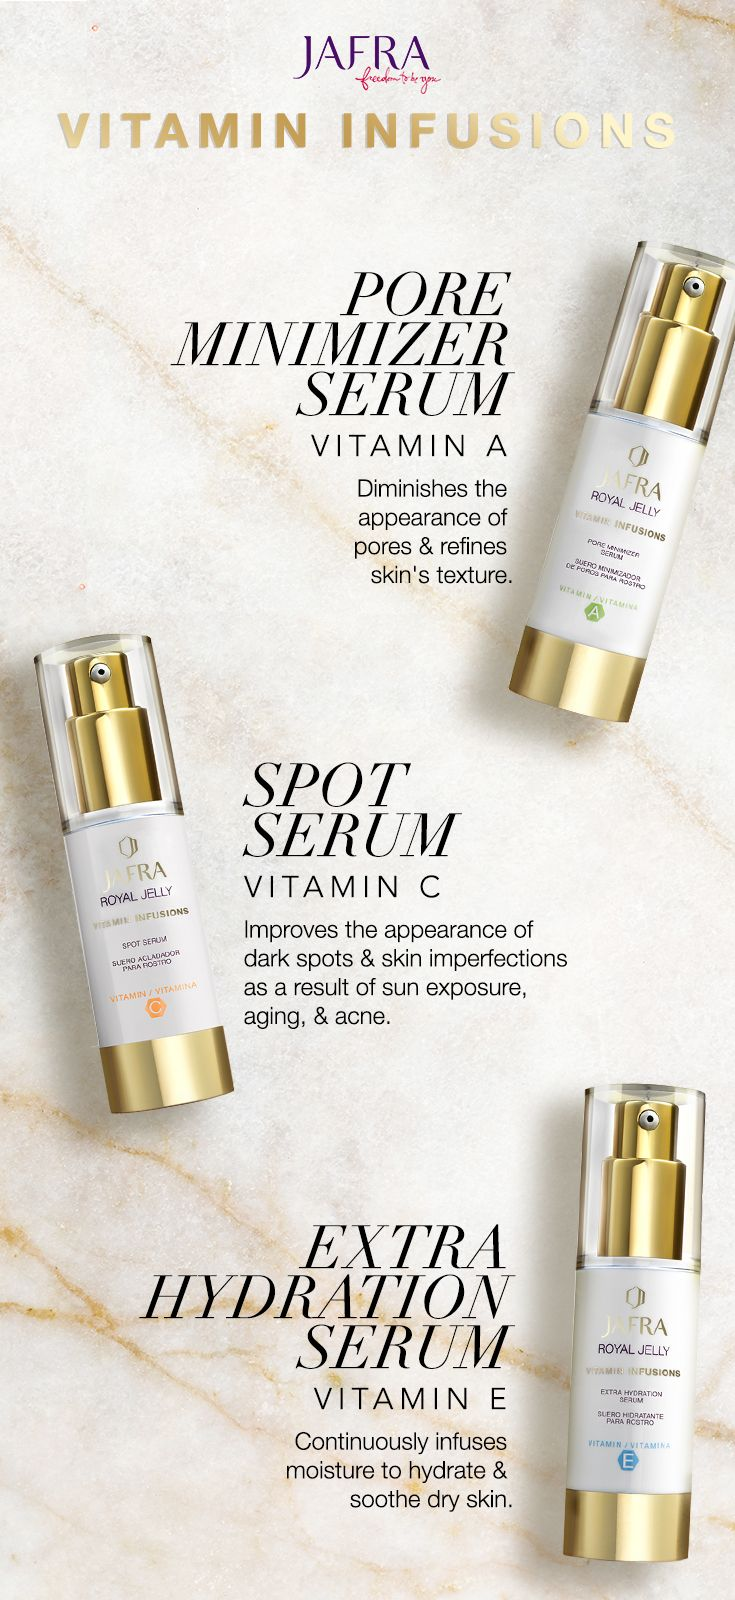 Having Skin Issues Were Here To Help Our Royal Jelly Serums Are Jafra Infused With Vitamins Meet Your Skincare Needs Minimize Pores Spots And Add Extra Hydration These 3 Must Have